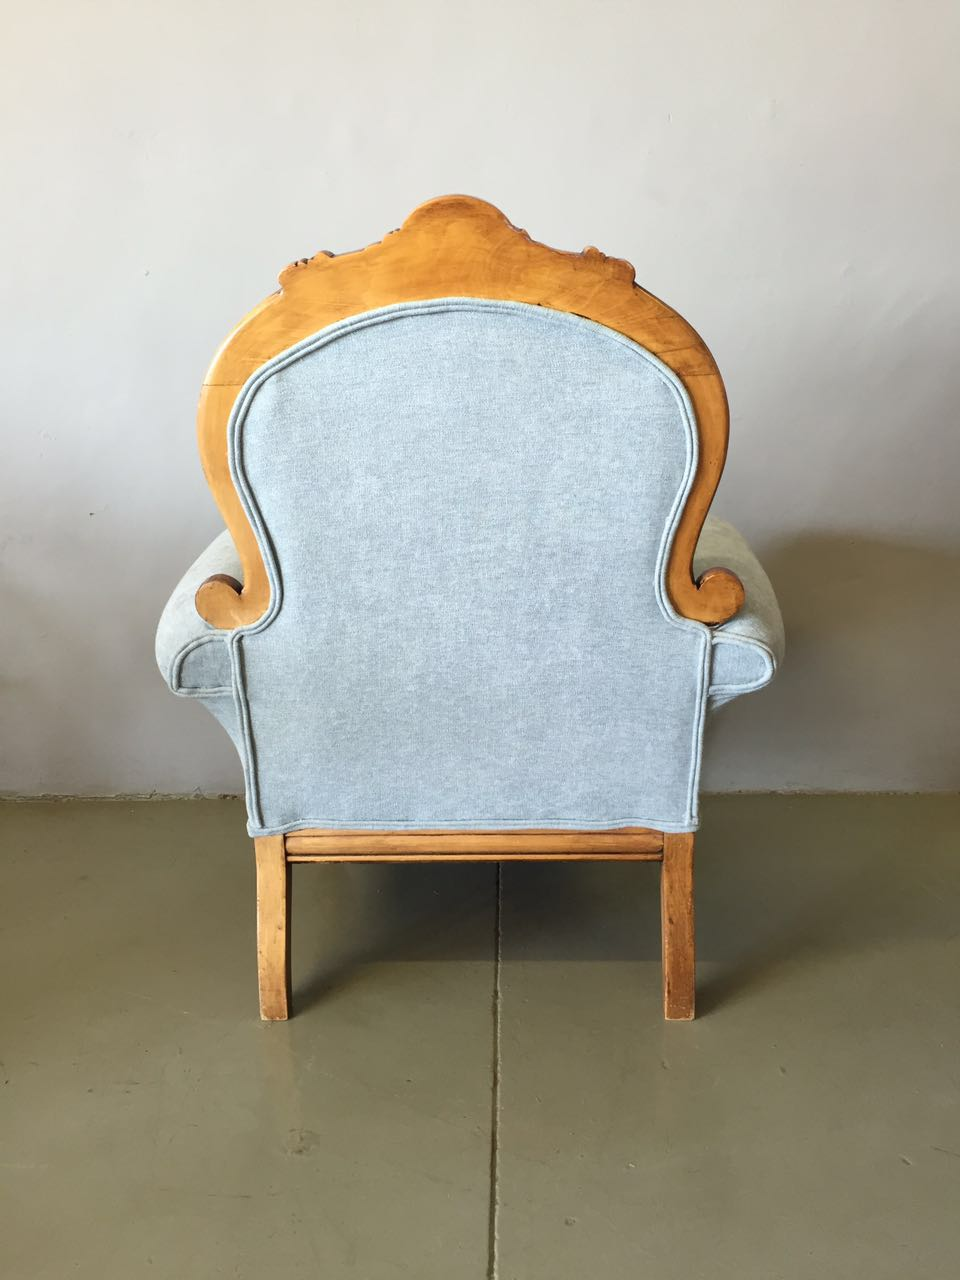 Re-upholstered Antique chair with belly cushions